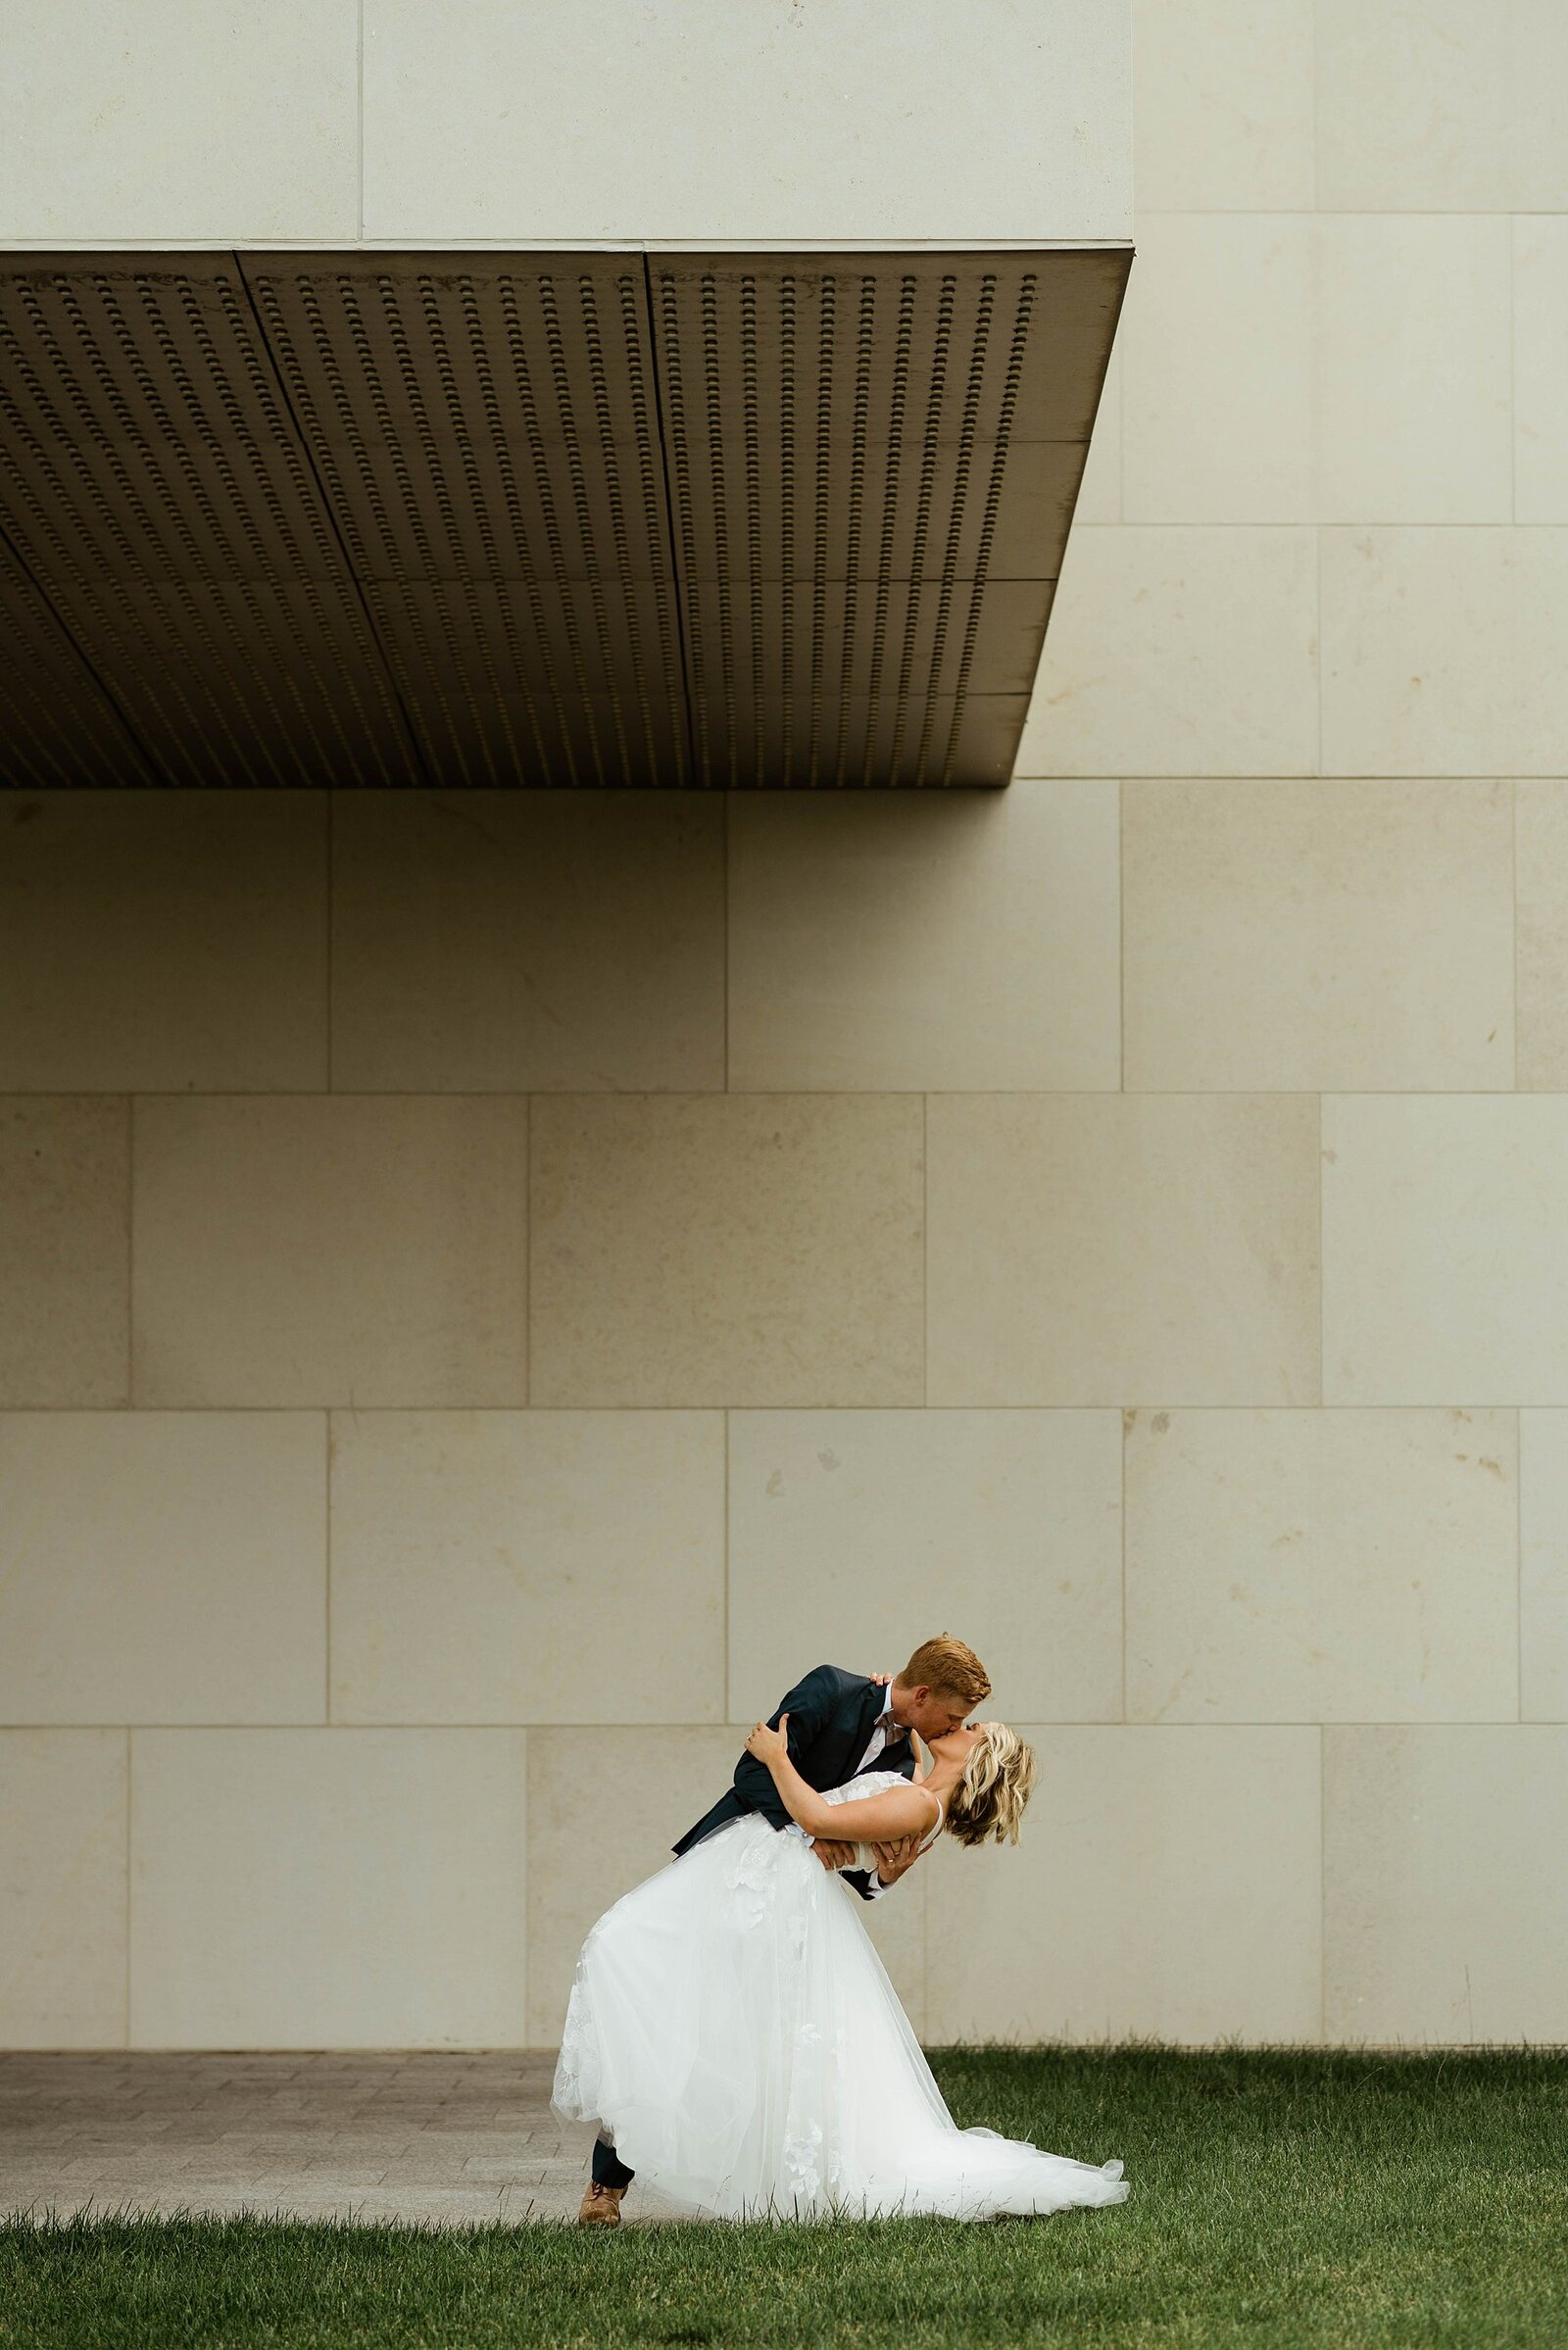 Groom dips bride for kiss at Nerman Museum